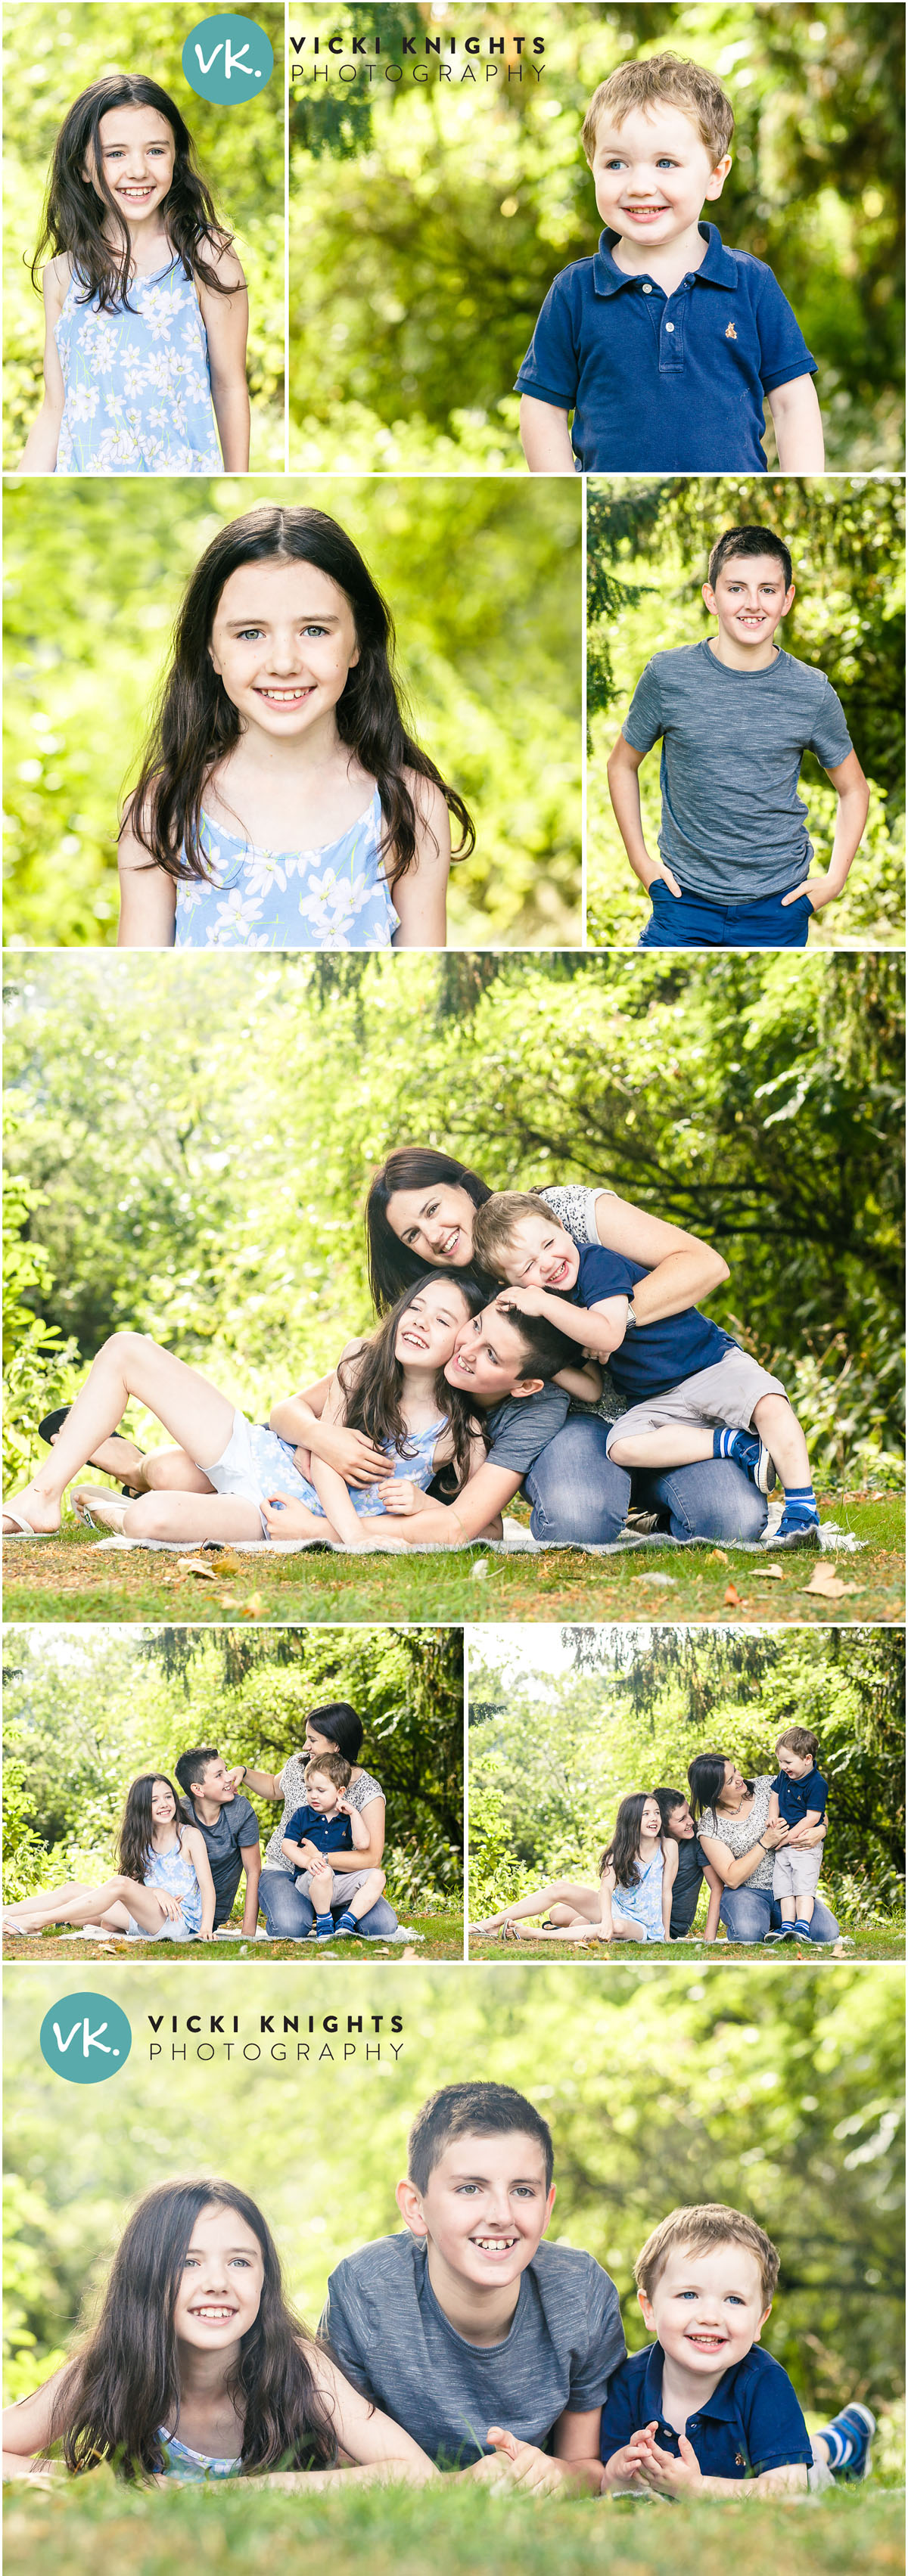 cobham-family-photographer-vicki-knights